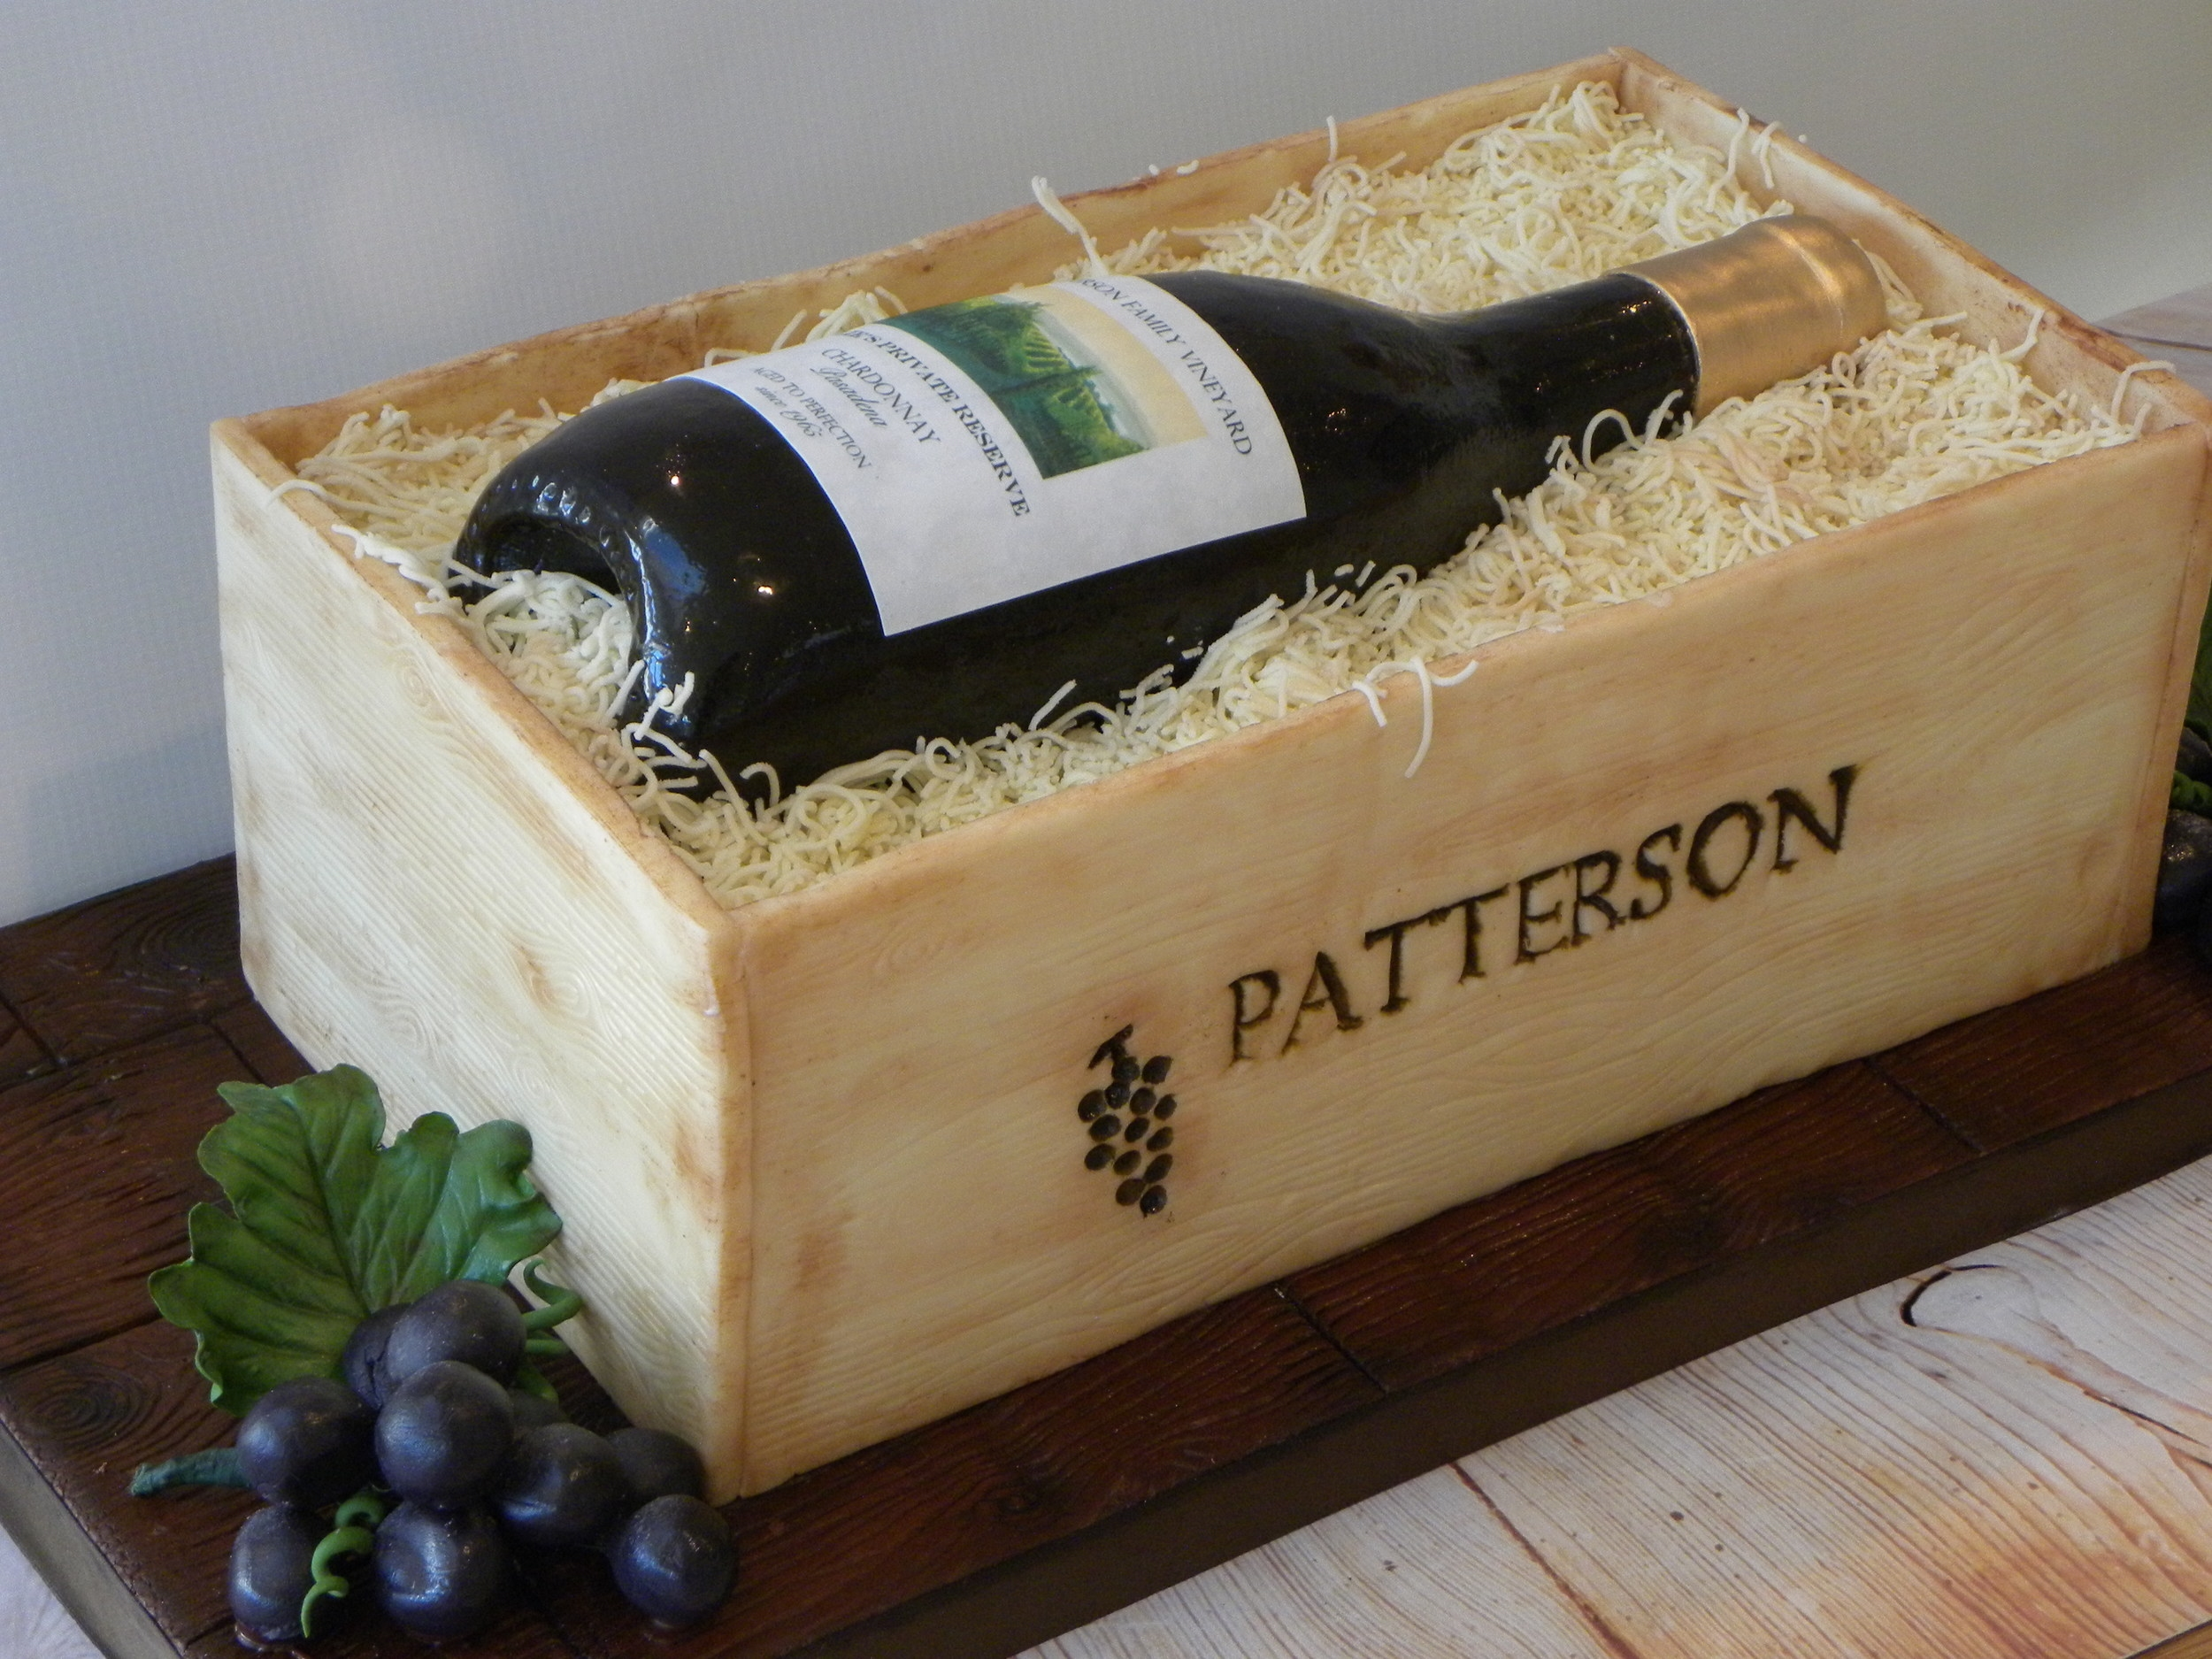 Wine Bottle Cake with Faux Wood Crate